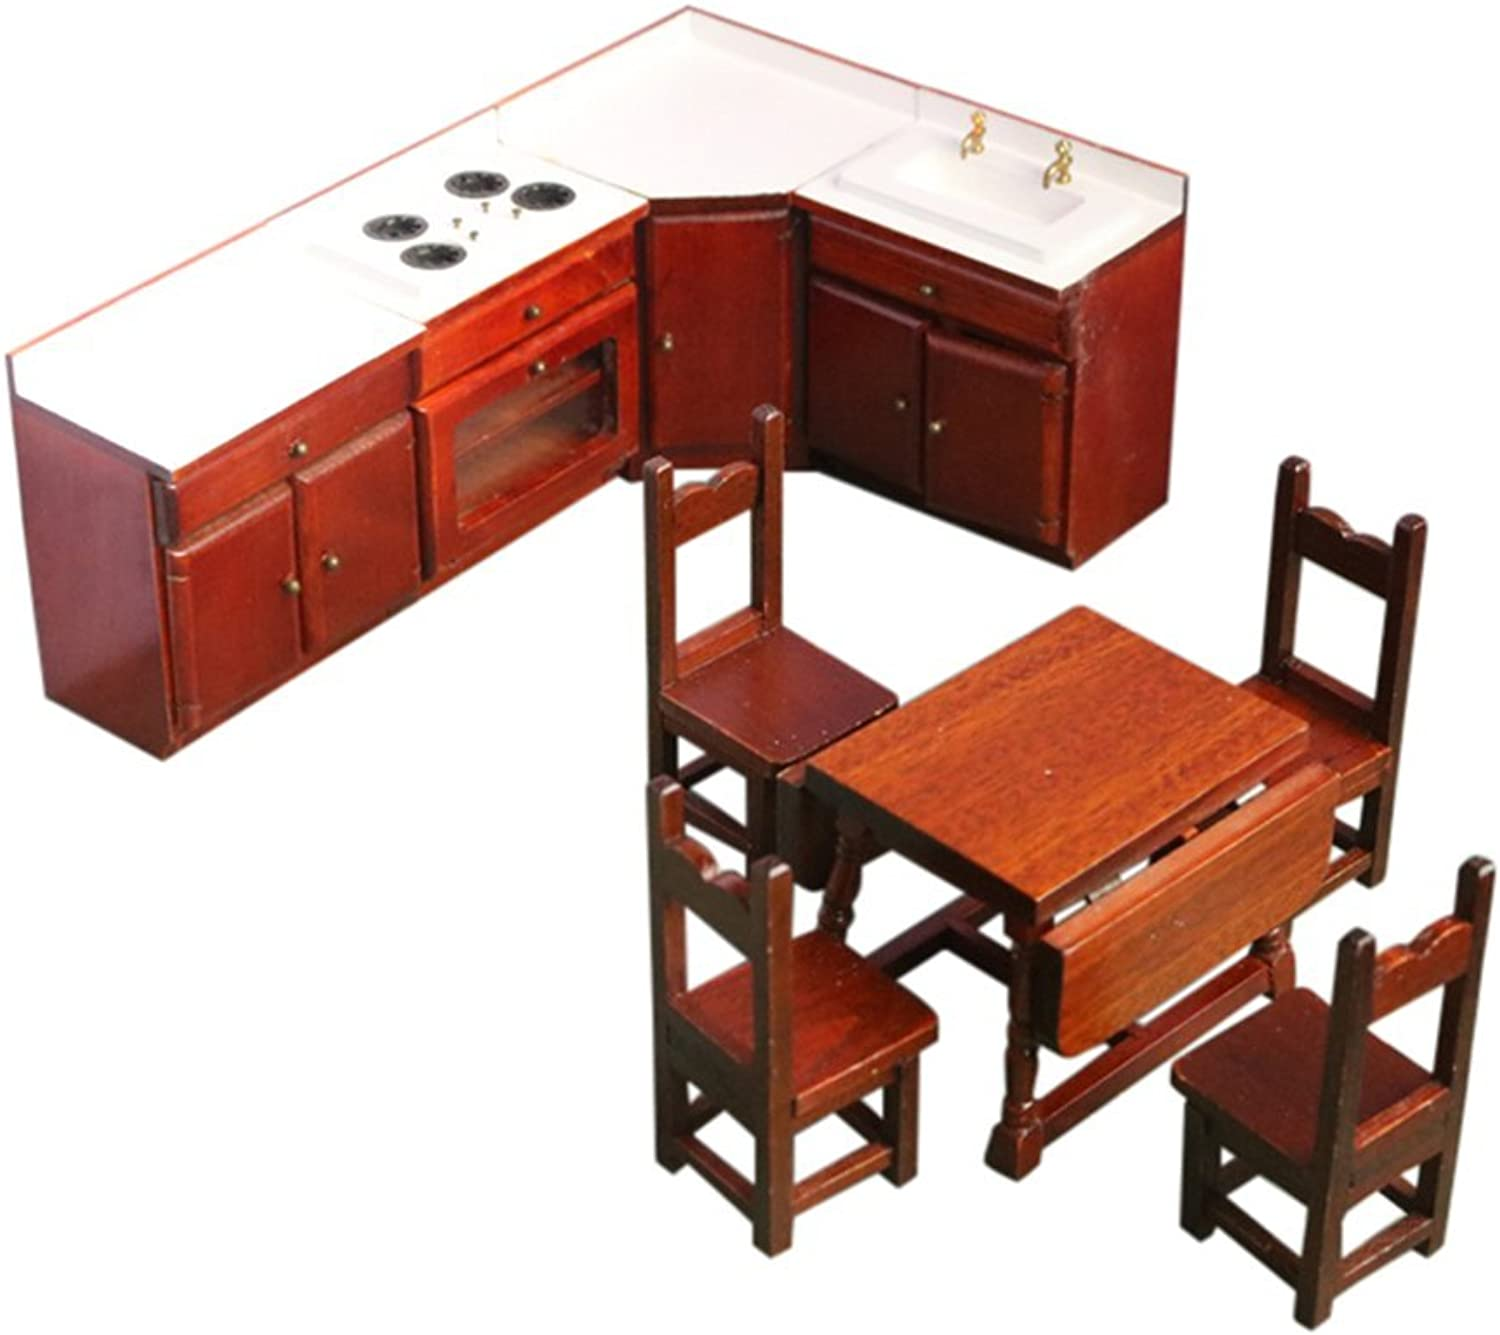 BESTLEE 1 12 Wooden Dollhouse Kitchen Furniture Sink and Stove Cabinet Table and Chairs Set